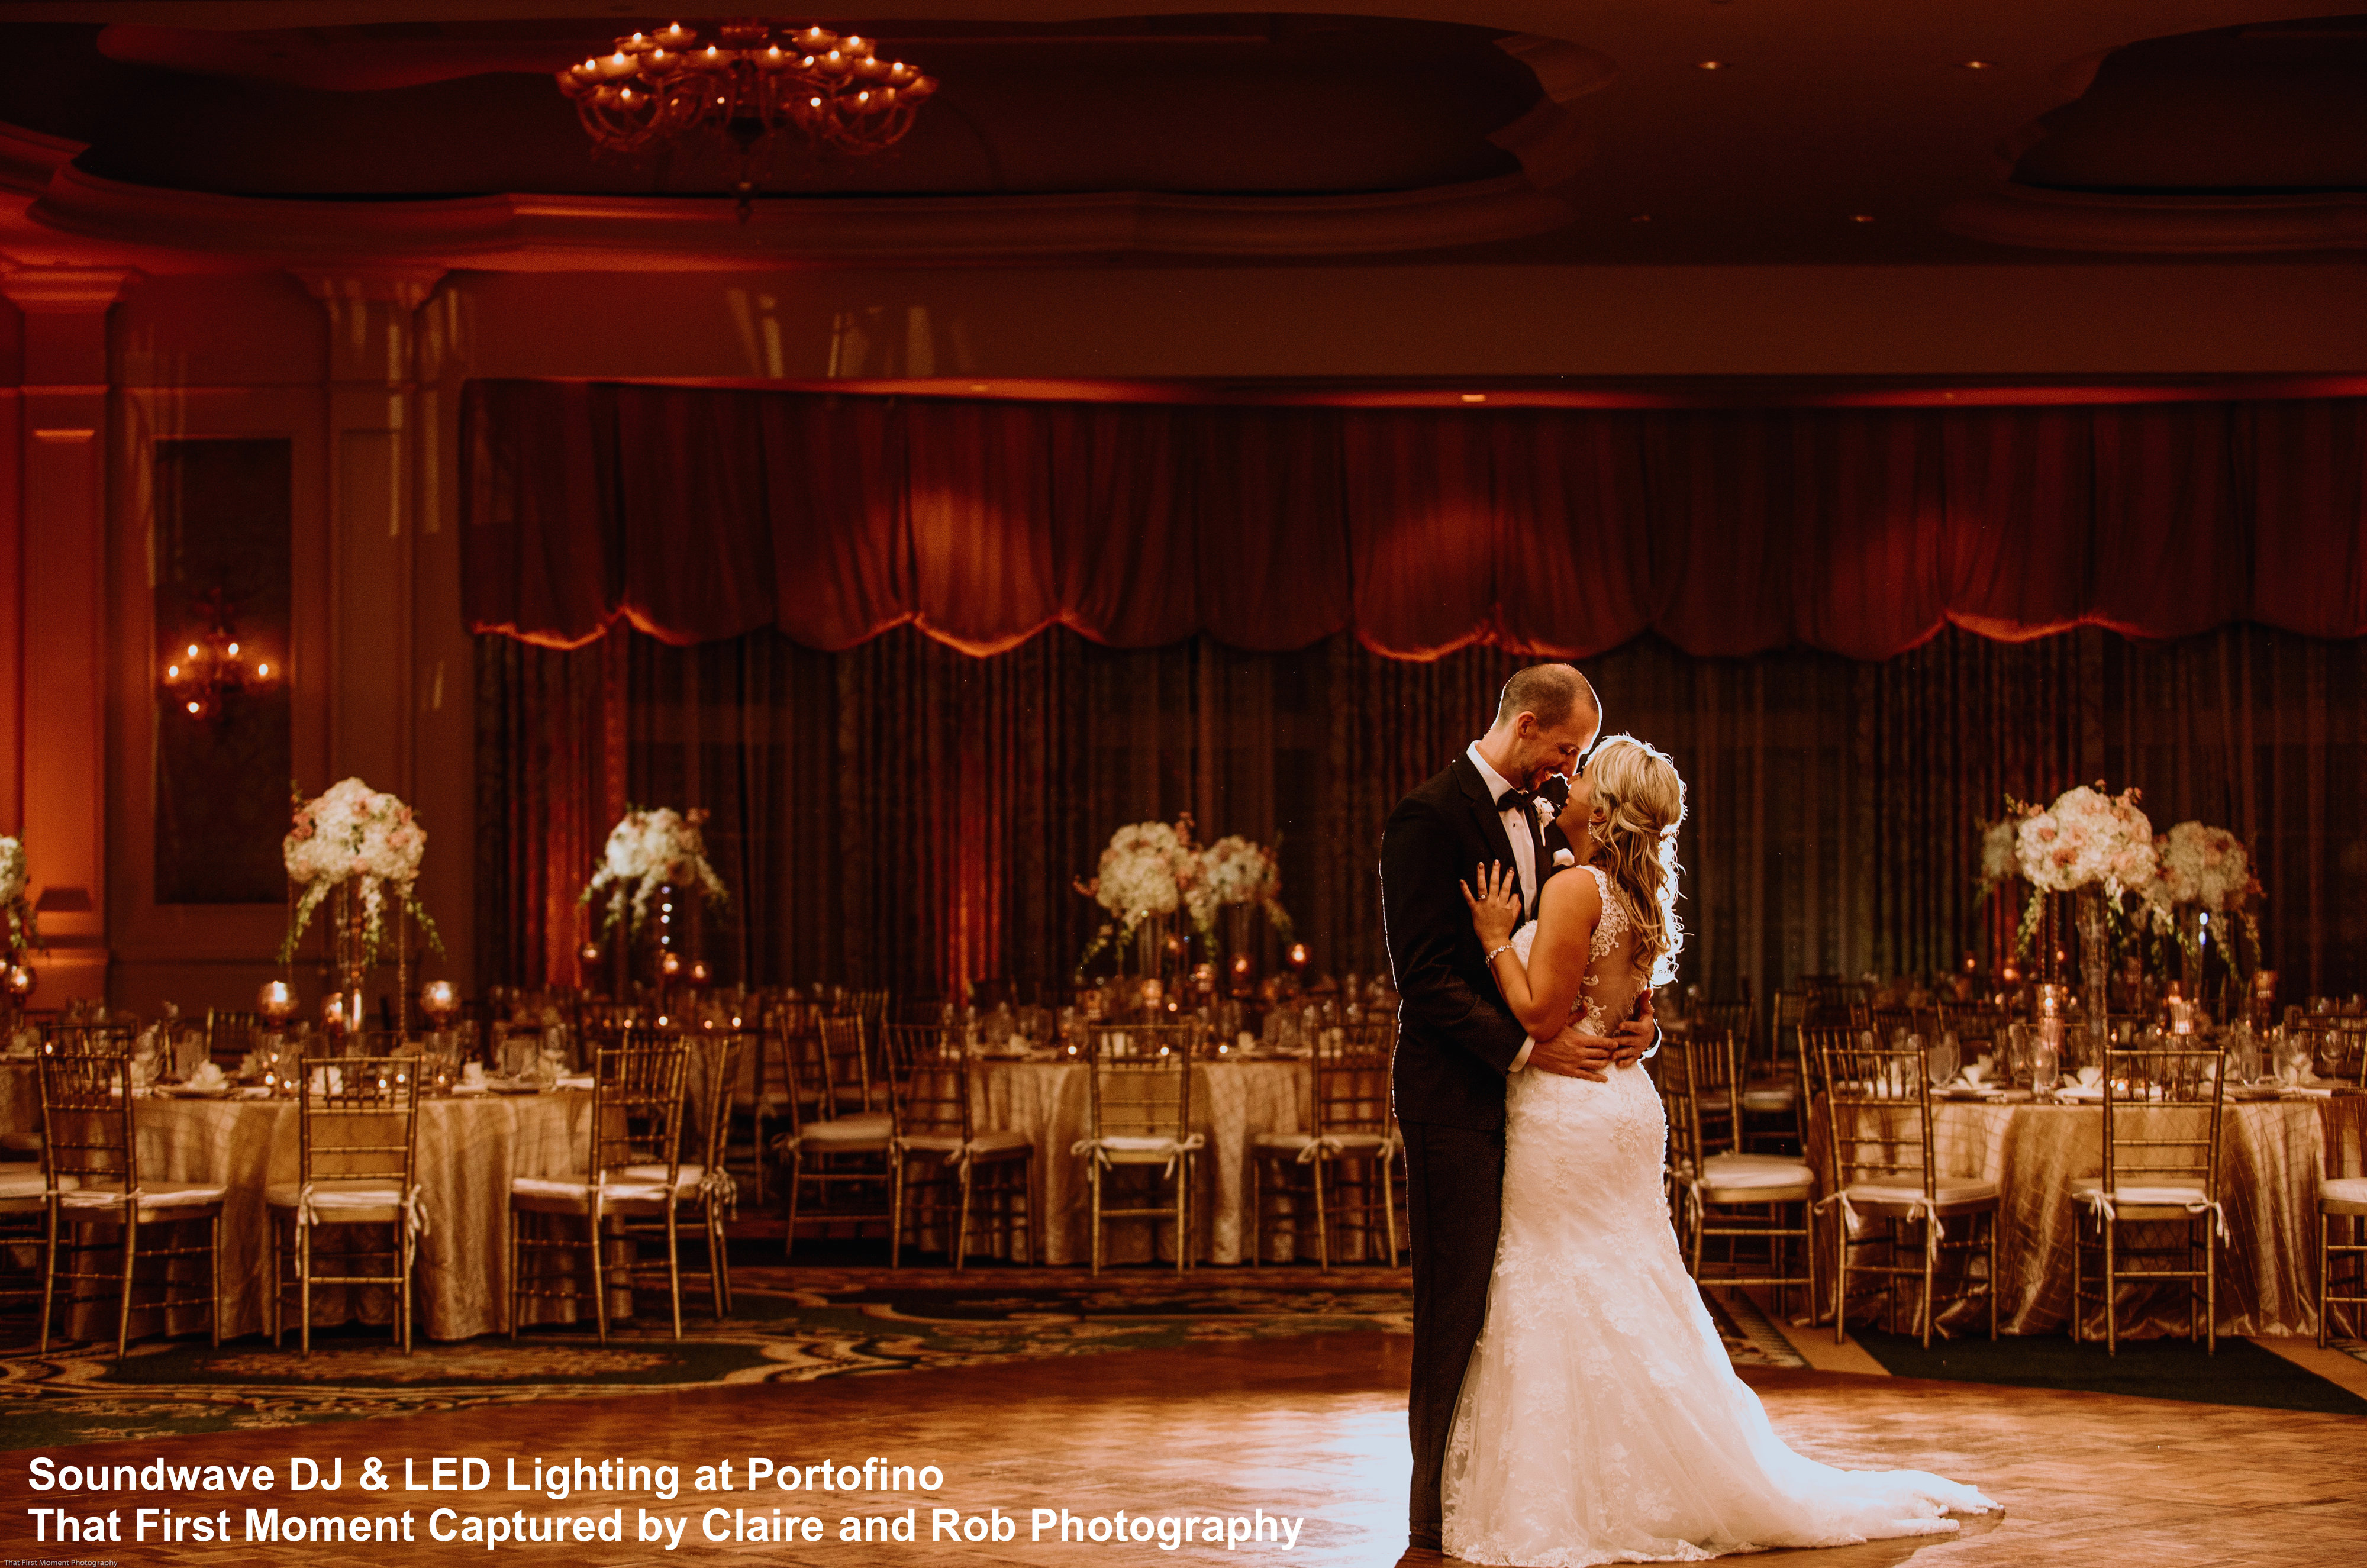 loews portofino bay hotel - orlando wedding venue - orlando wedding dj - soundwave entertainment - orlando, fl